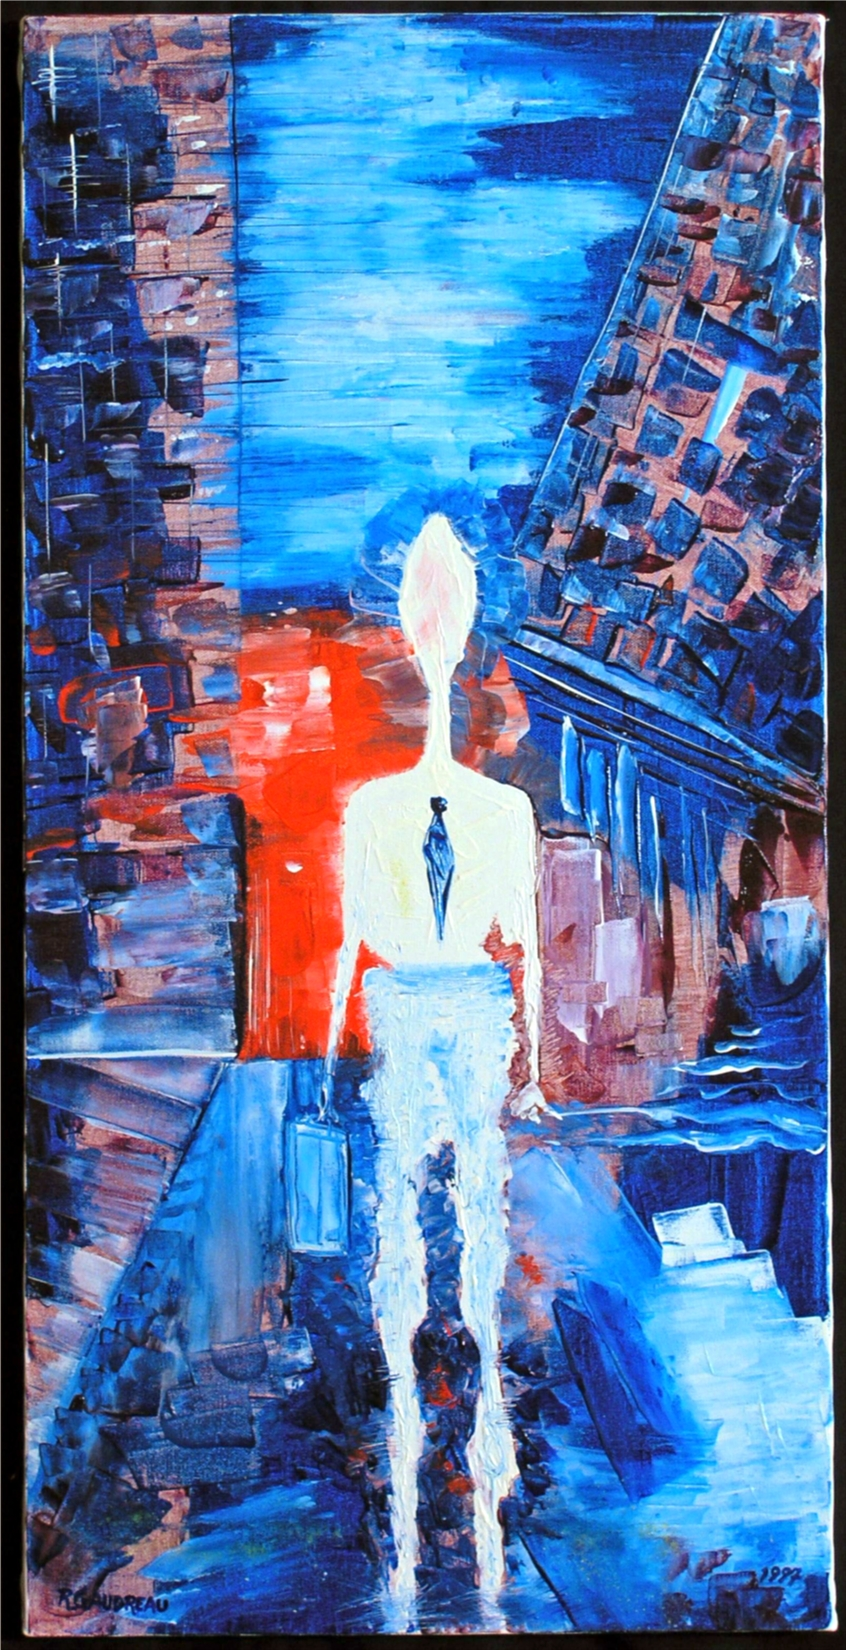 Man with the Suitcase Evening Work  1997 mixed media knife painting on canvas 30 x 15 inches